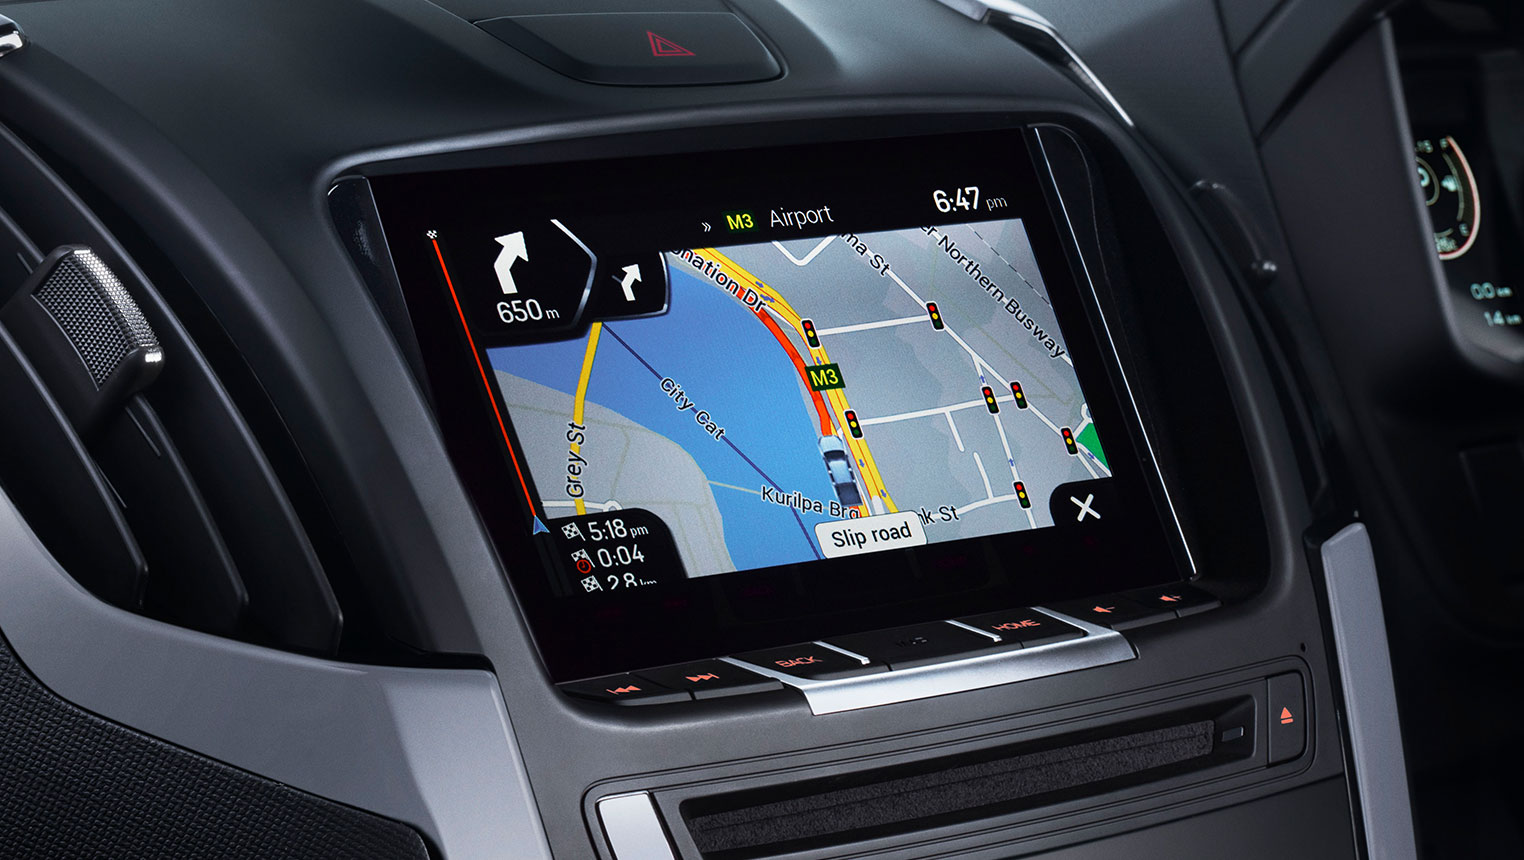 Touchscreen Audio and Satellite Navigation System Image